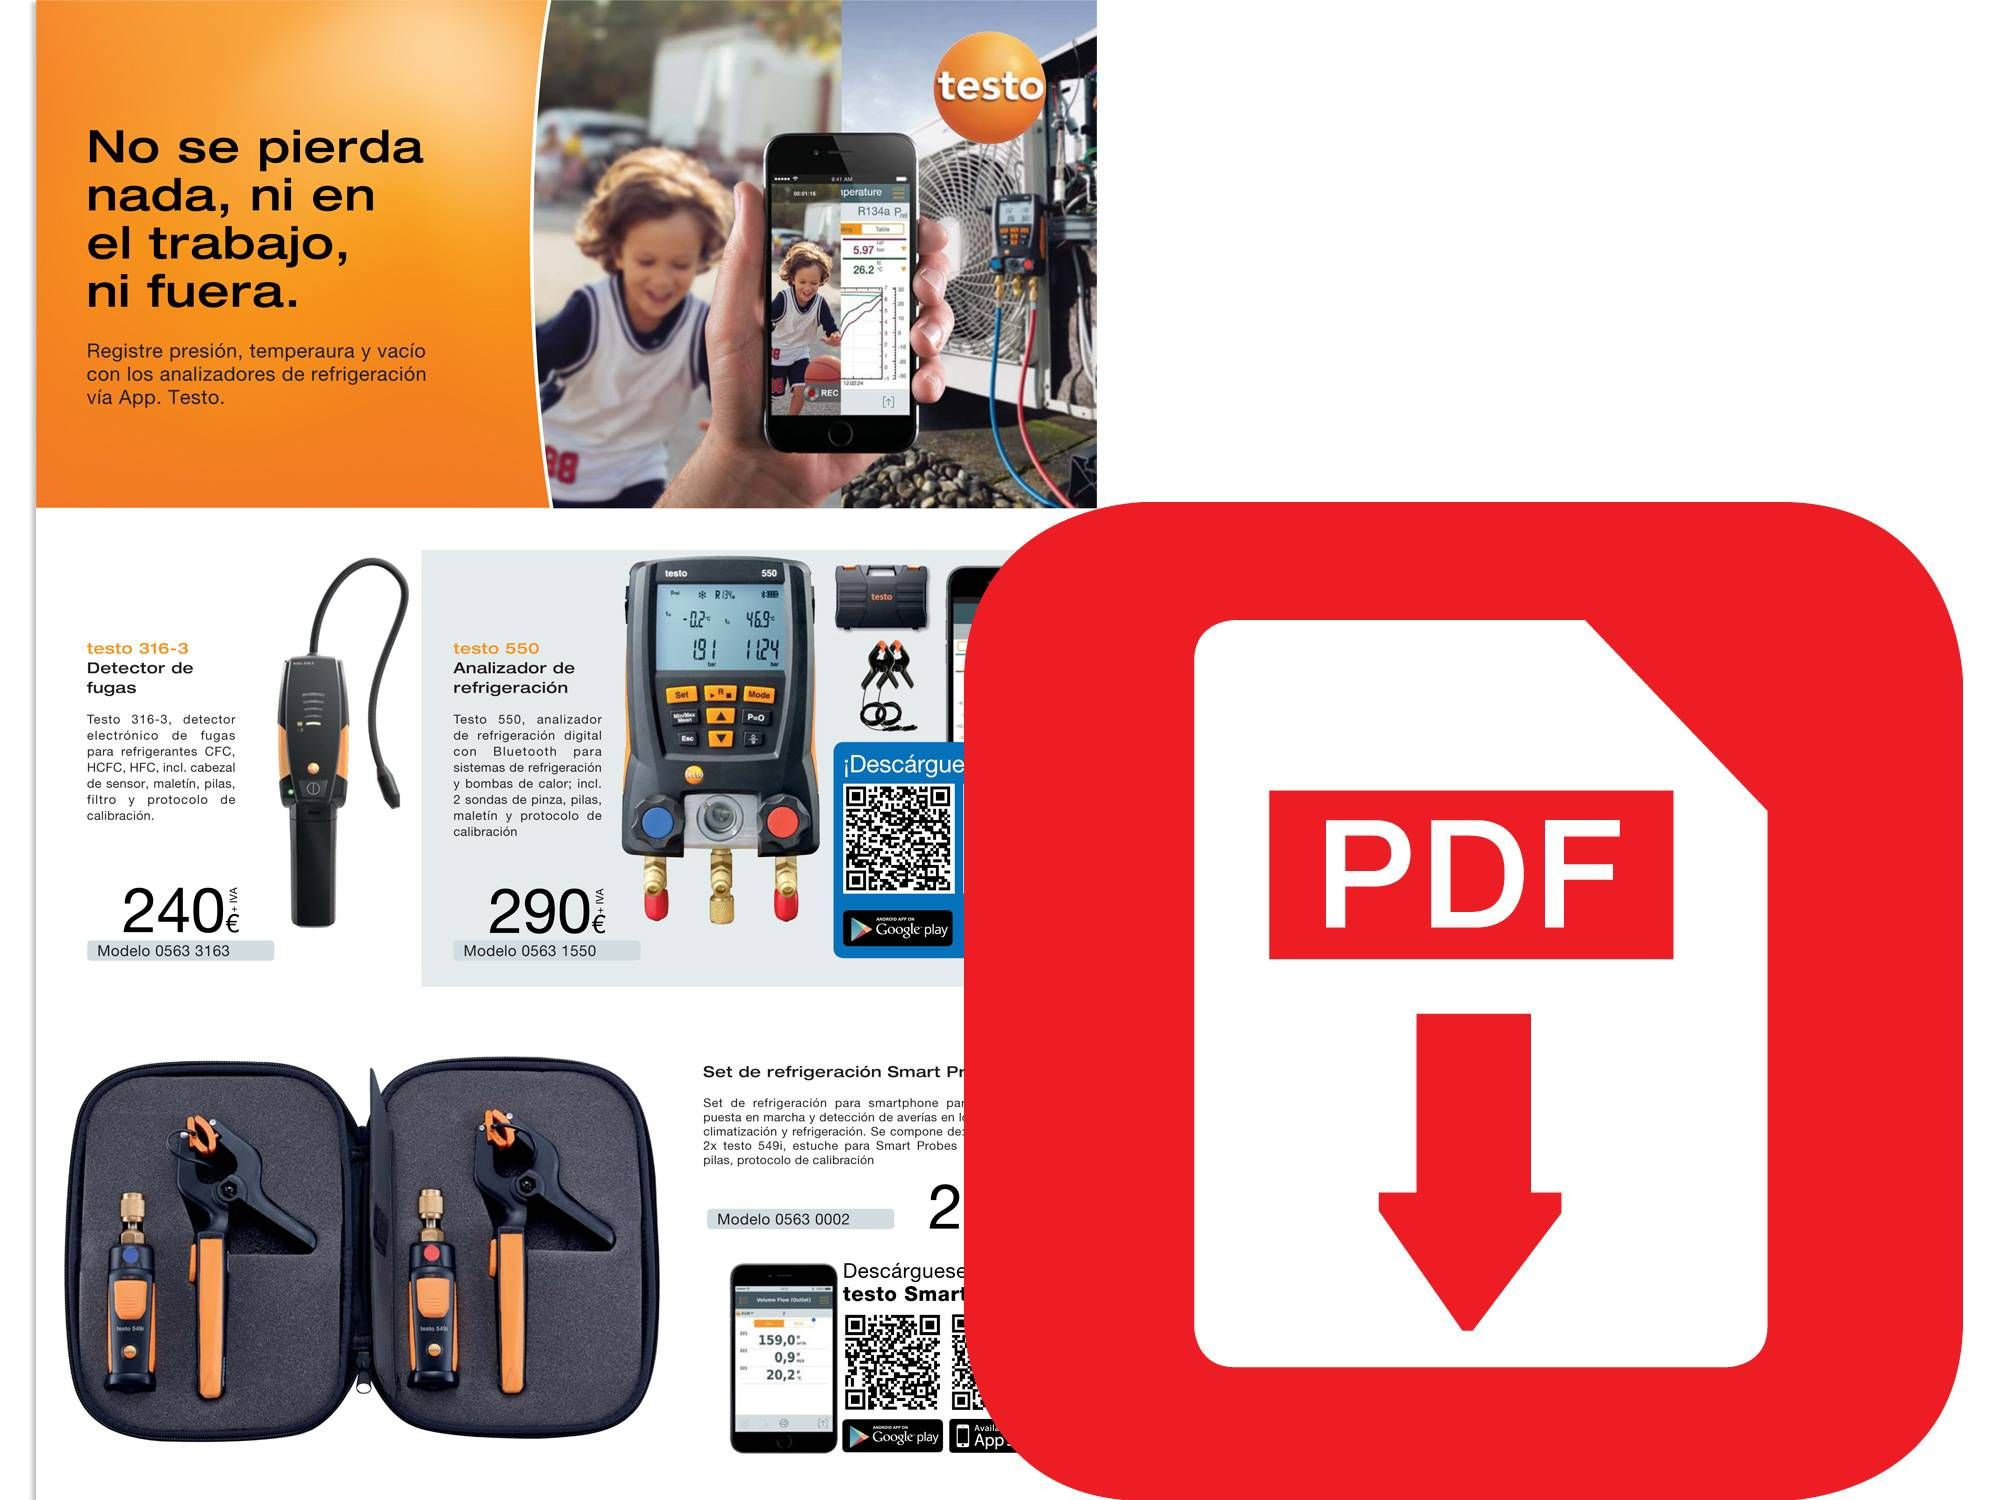 Descargar folleto en PDF